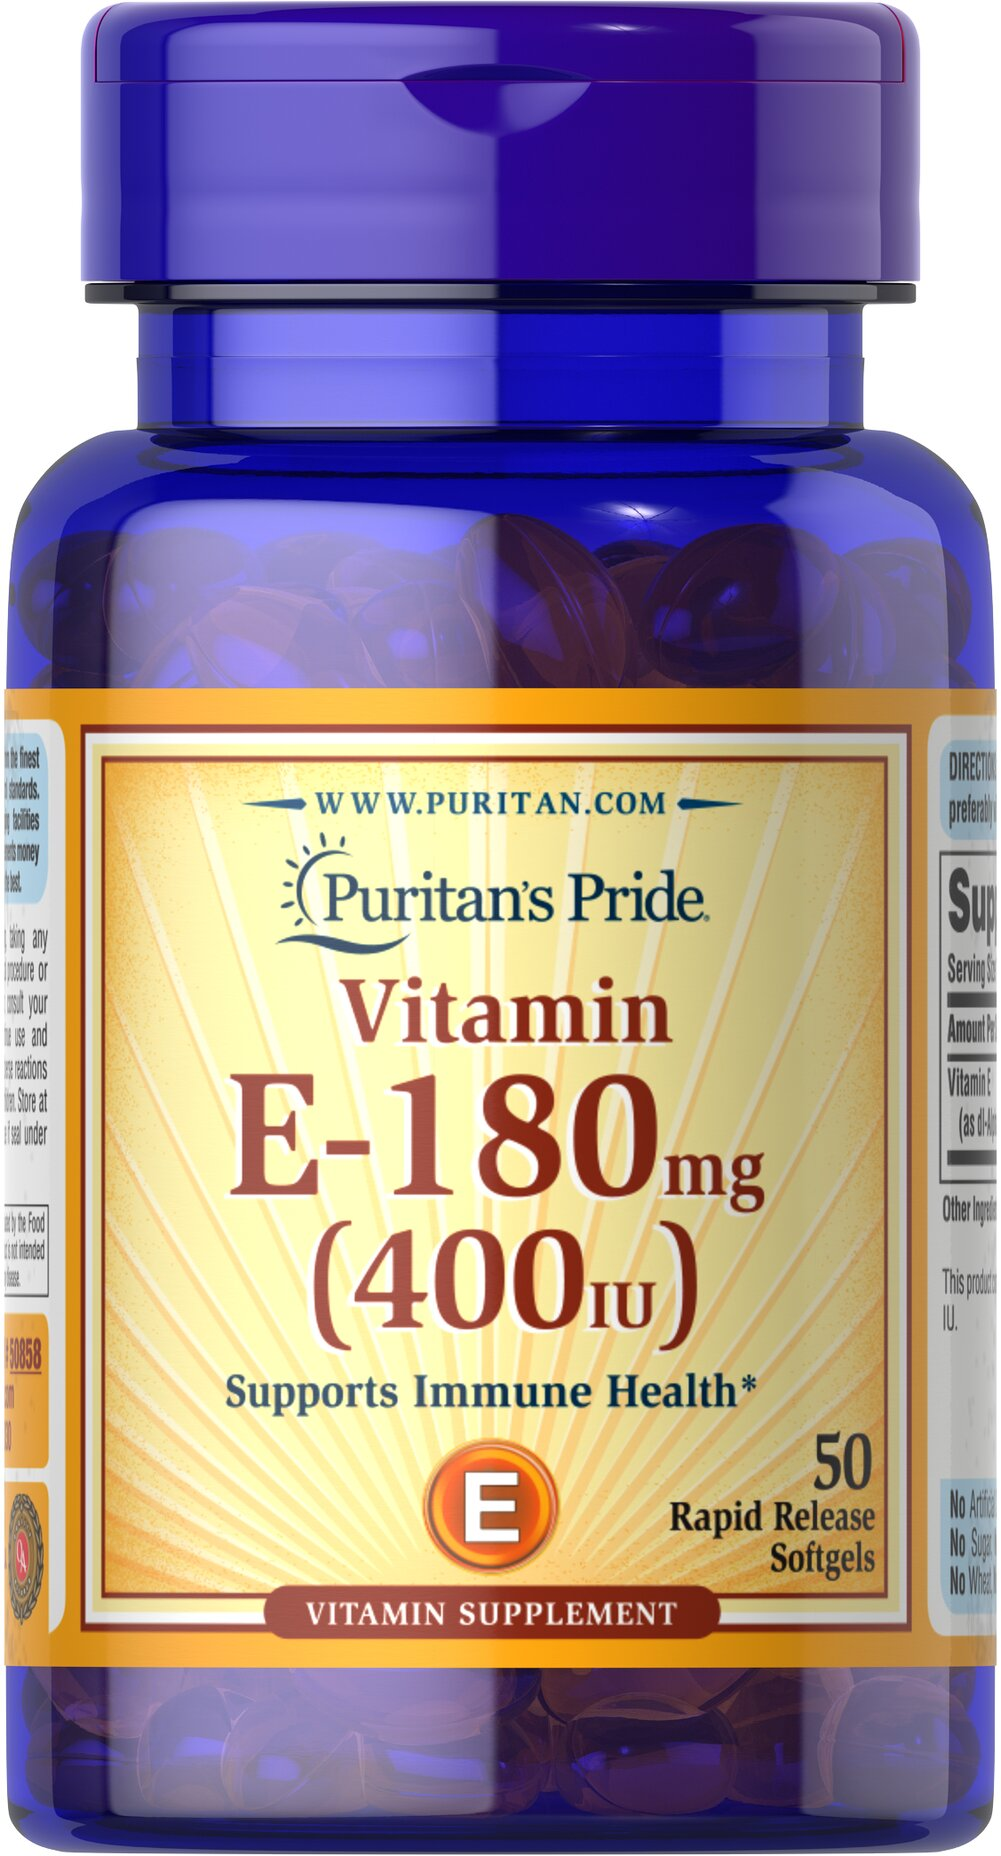 Vitamin E-400 IU <p></p>Our Vitamin E supplement features dl-Alpha Vitamin E, a synthetic form of Vitamin E. Vitamin E is a potent antioxidant that helps fight free radicals.** Oxidative stress caused by free radicals may contribute to the premature aging of cells. Vitamin E supports immune health and helps support cardiovascular health.** Vitamin E also plays a role in maintaining healthy blood vessels.** Some people, including those on low-fat diets, may not be meeting the recommen